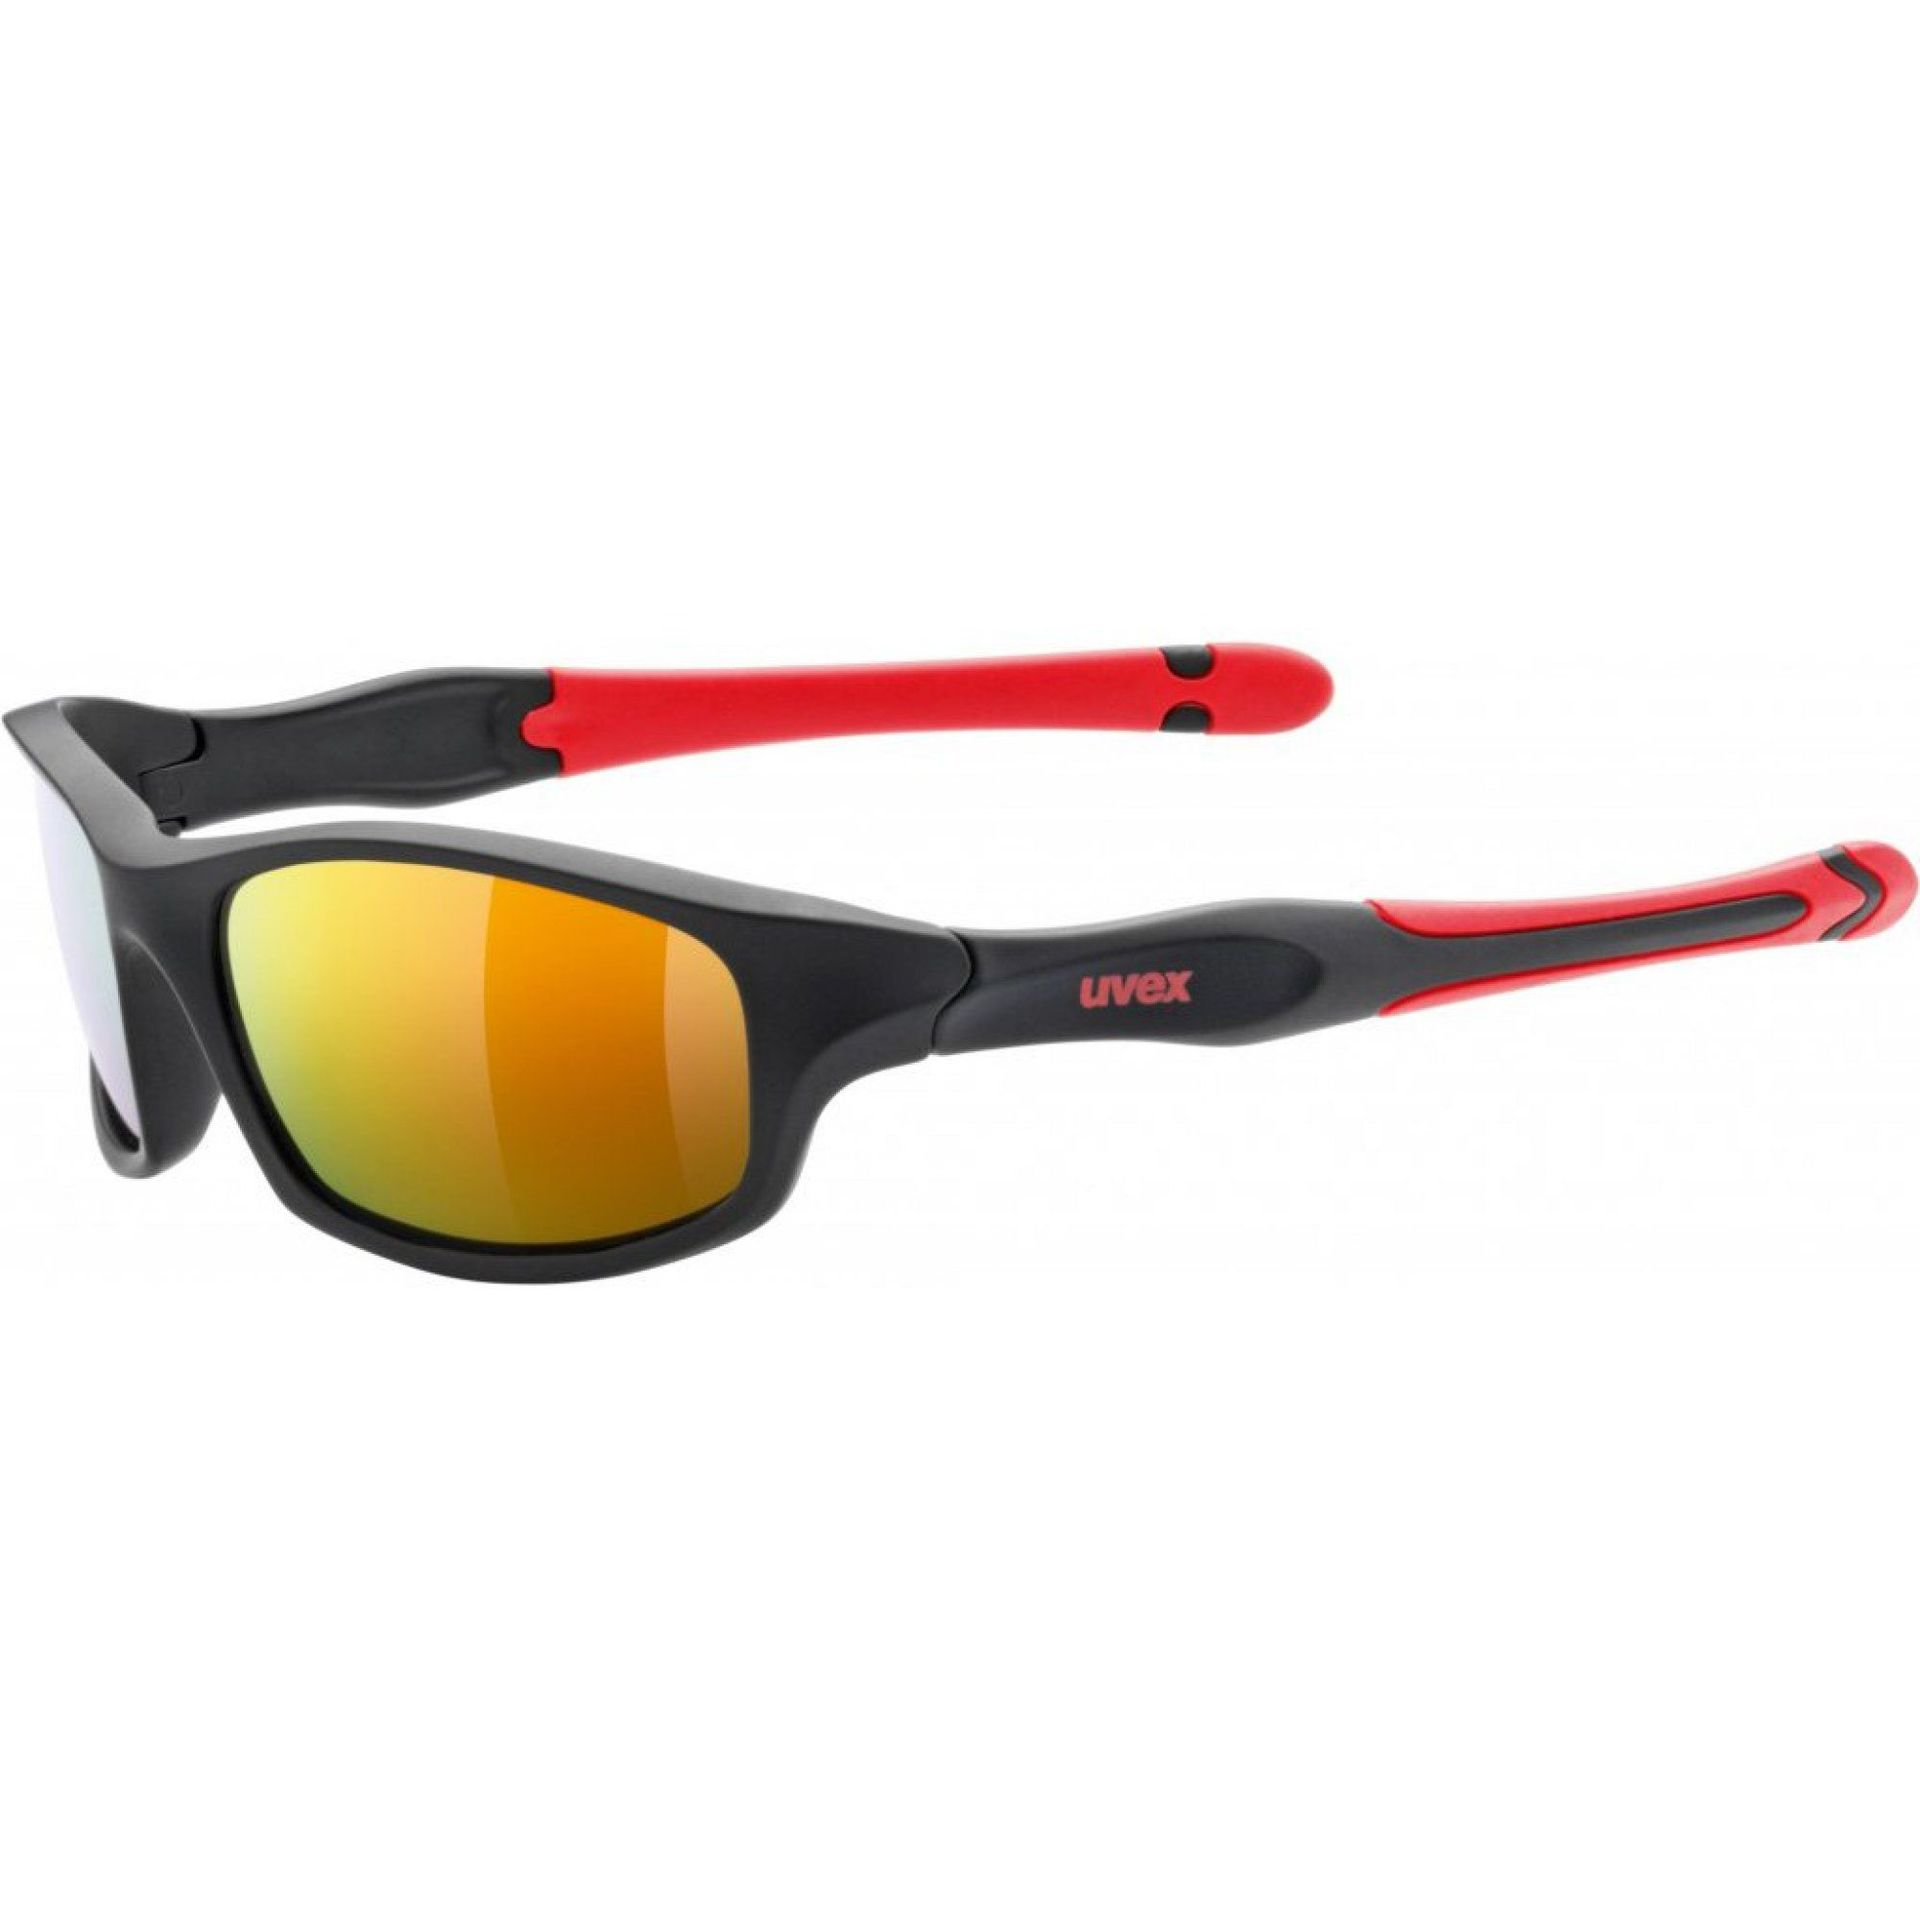 OKULARY UVEX SPORTSTYLE 507 BLACK MAT RED